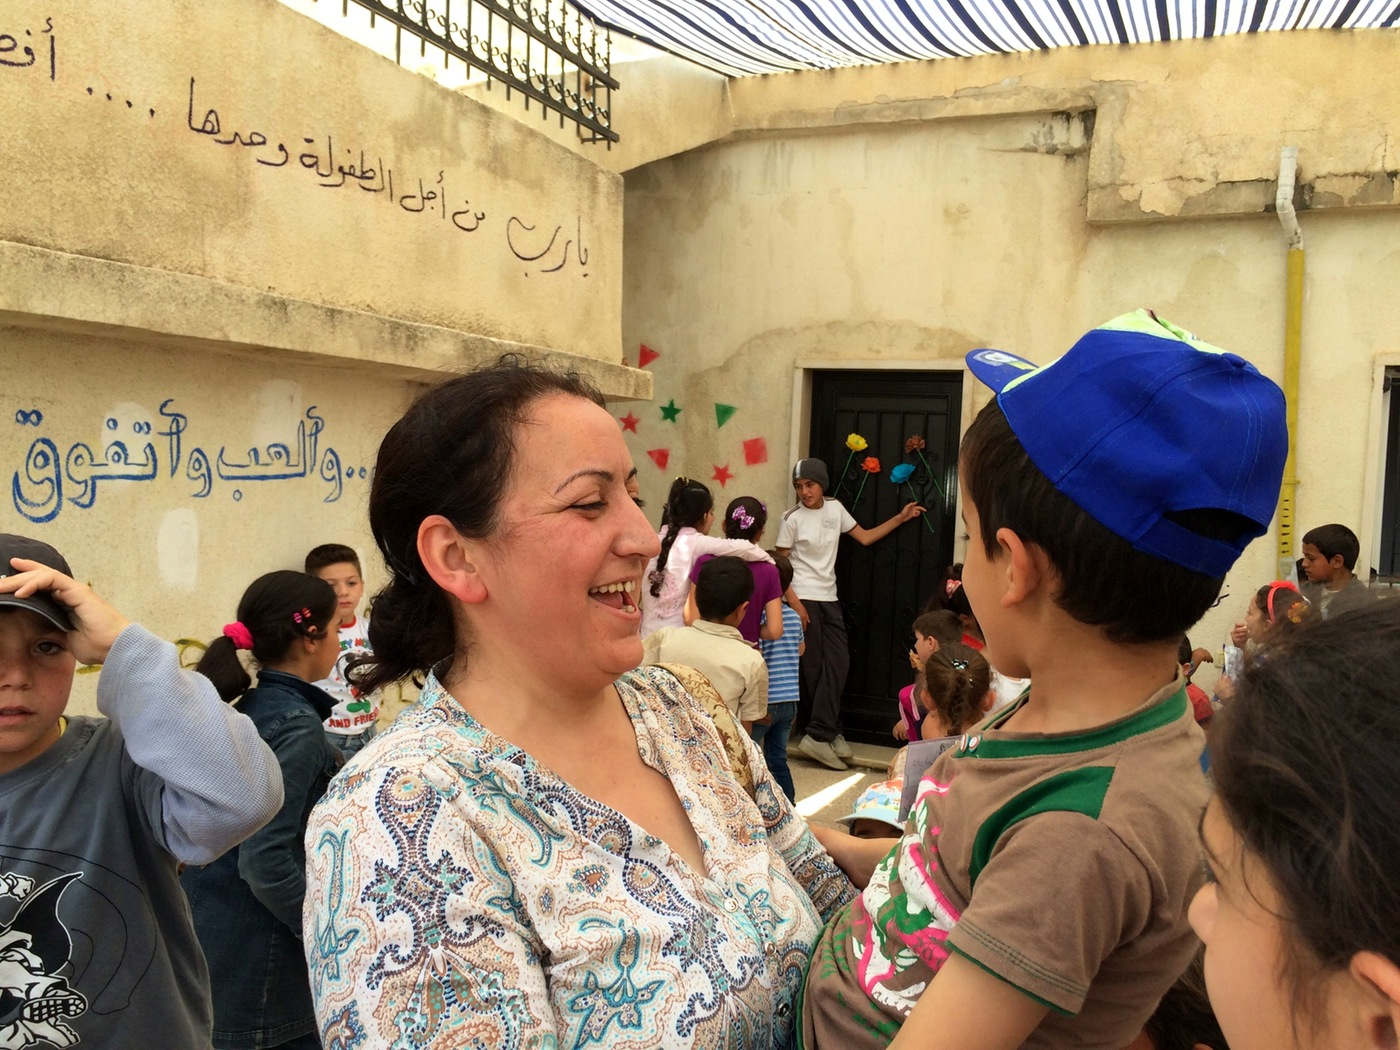 Ola Al-Junde, 43, is a Syrian math teacher who juggles her day job managing one school for Syrian refugee kids with volunteering at others. (Annia Ciezadlo)